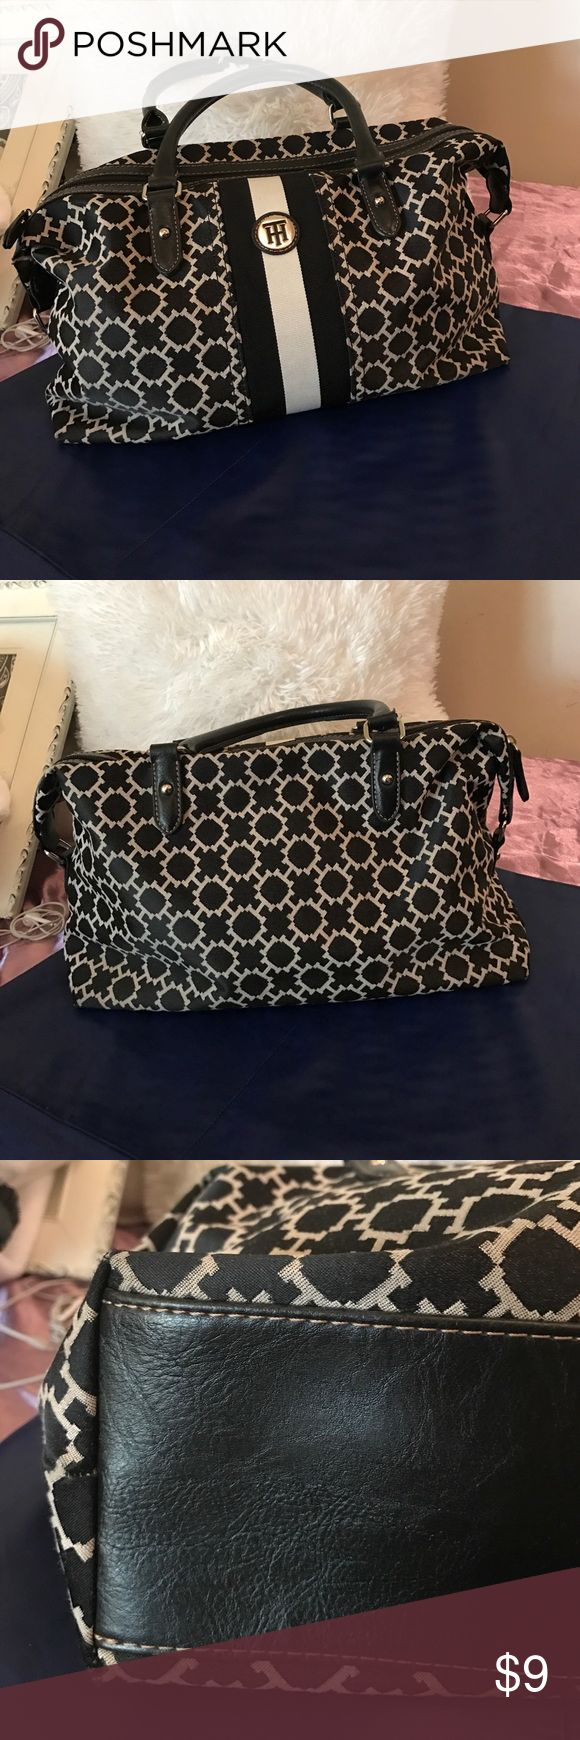 Tommy Hilfiger Handbag Tommy Hilfiger bag black and white. You will find a slit on all the handles of the bag see pictures. This bag has been discounted based on the defect. Tommy Hilfiger Bags Totes